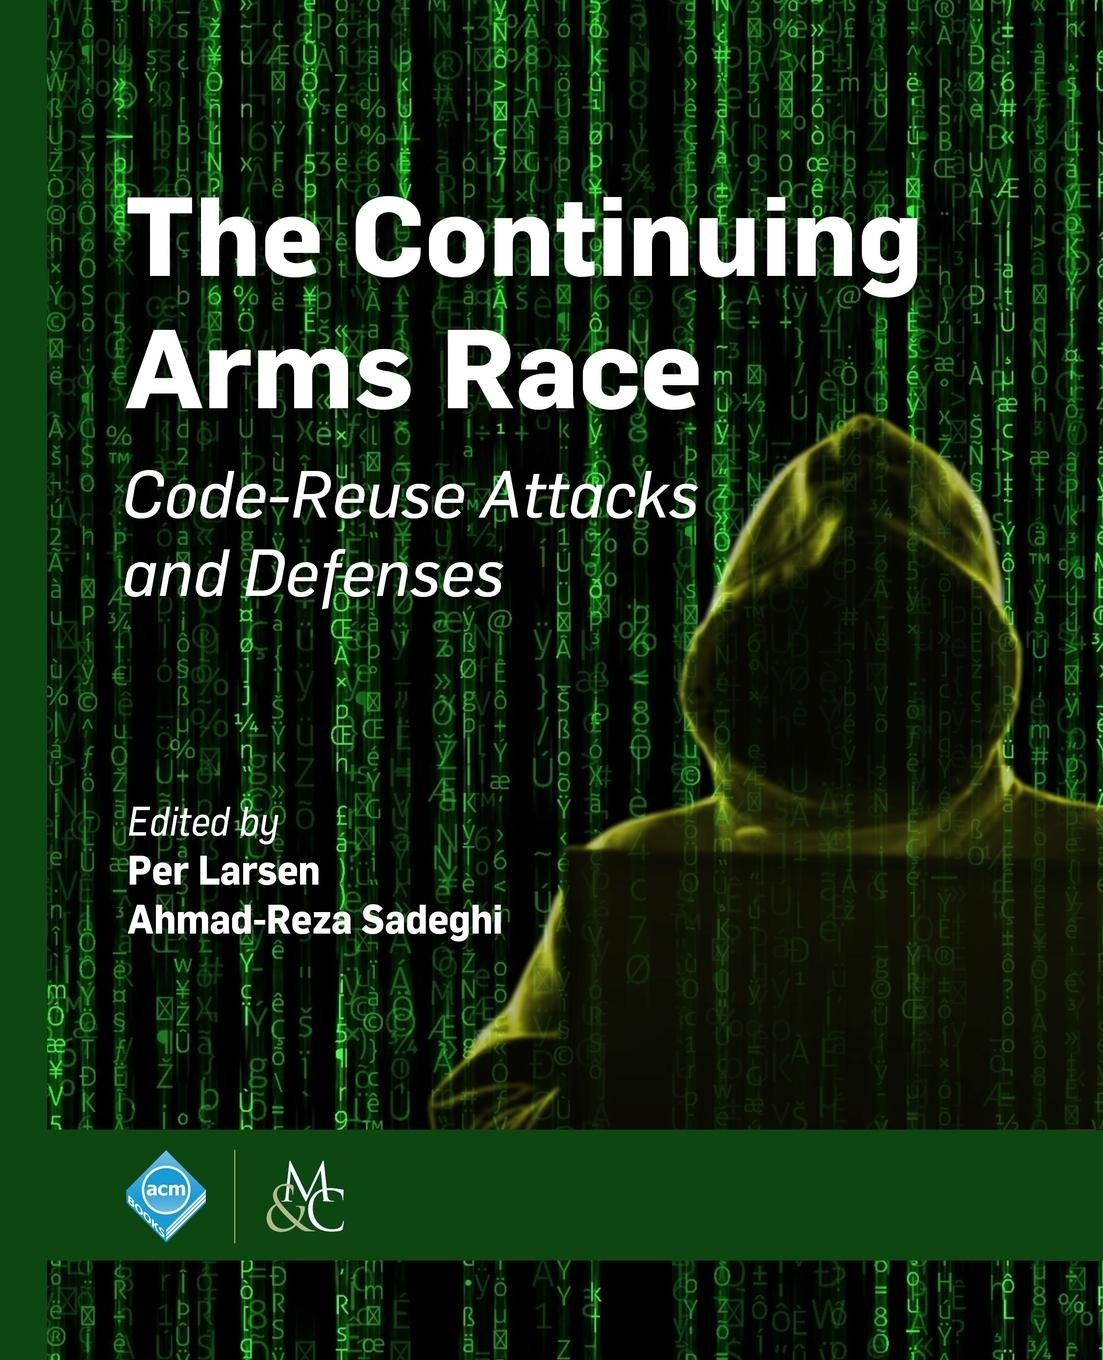 The Continuing Arms Race: Code-Reuse Attacks and Defenses (Acm Books) PDF